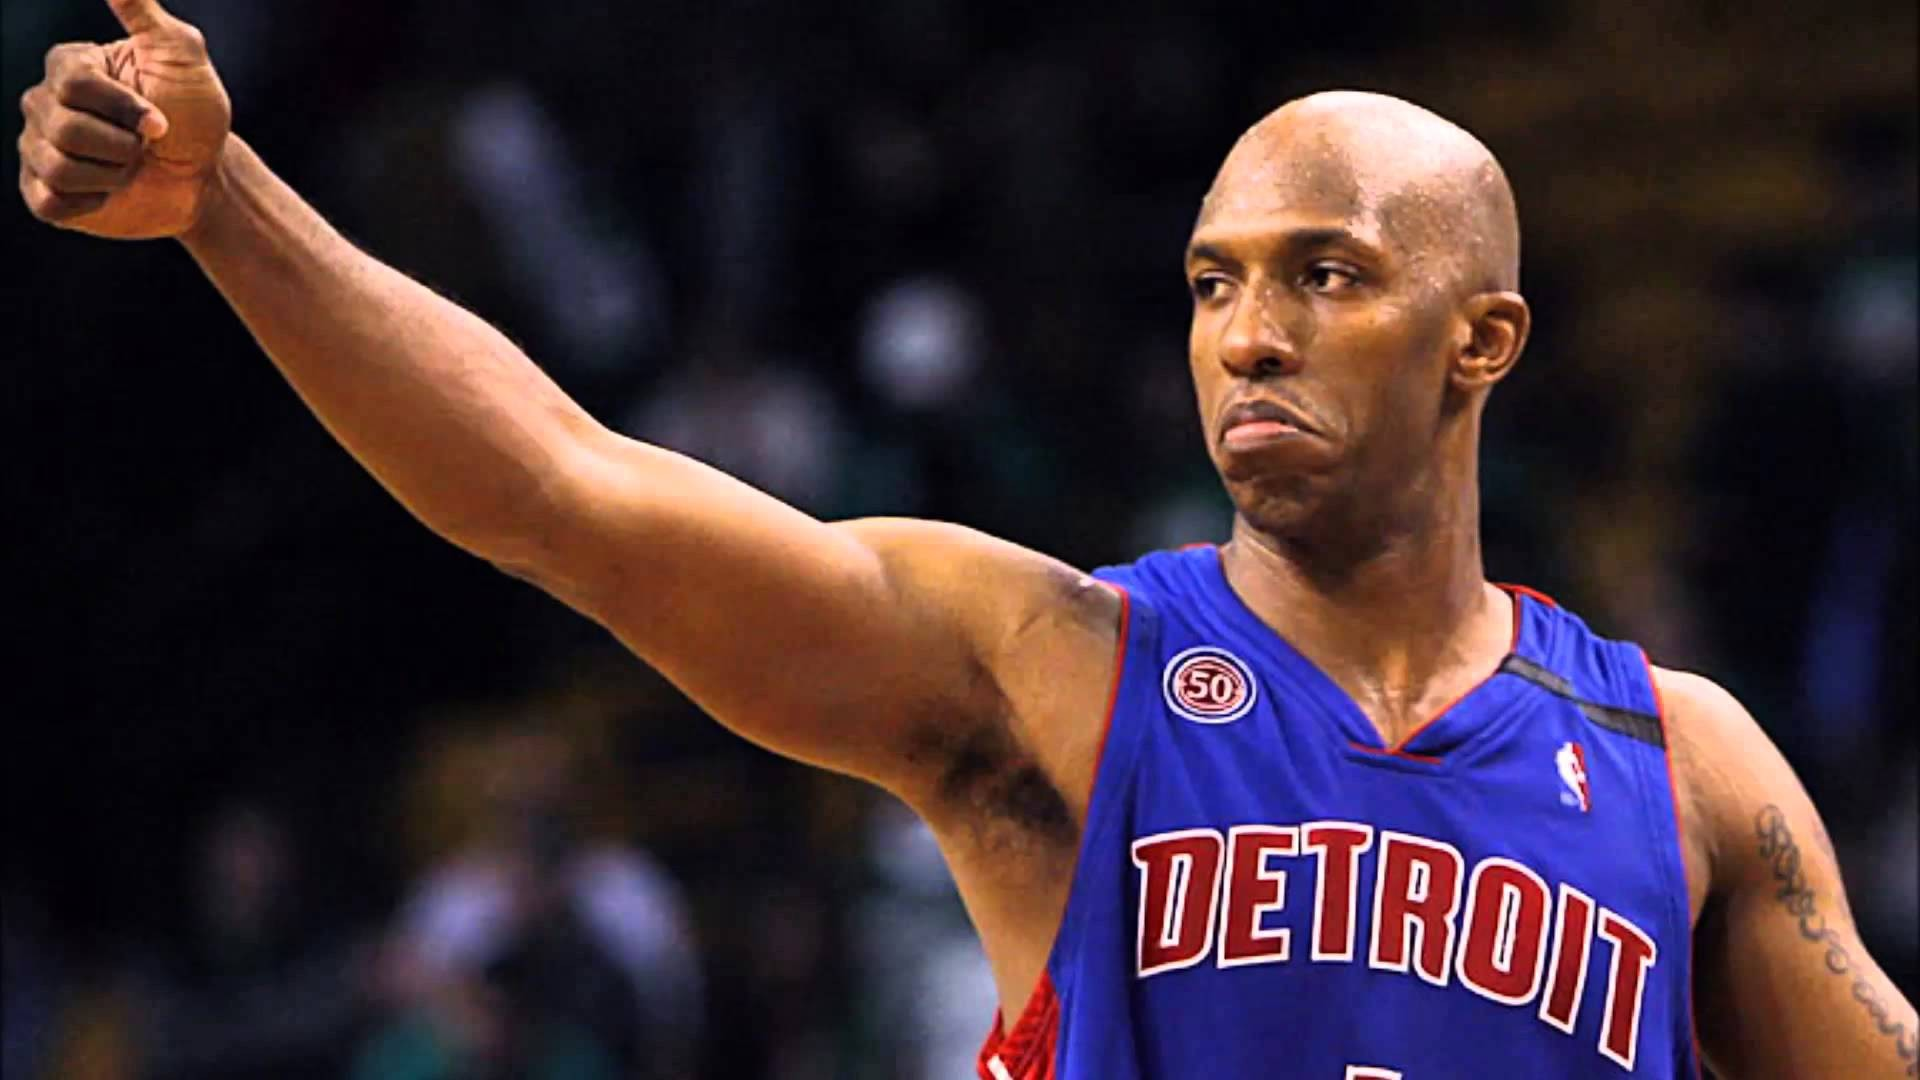 promo code c8202 9021c Chauncey Billups' jersey to be retired tonight | The Scene